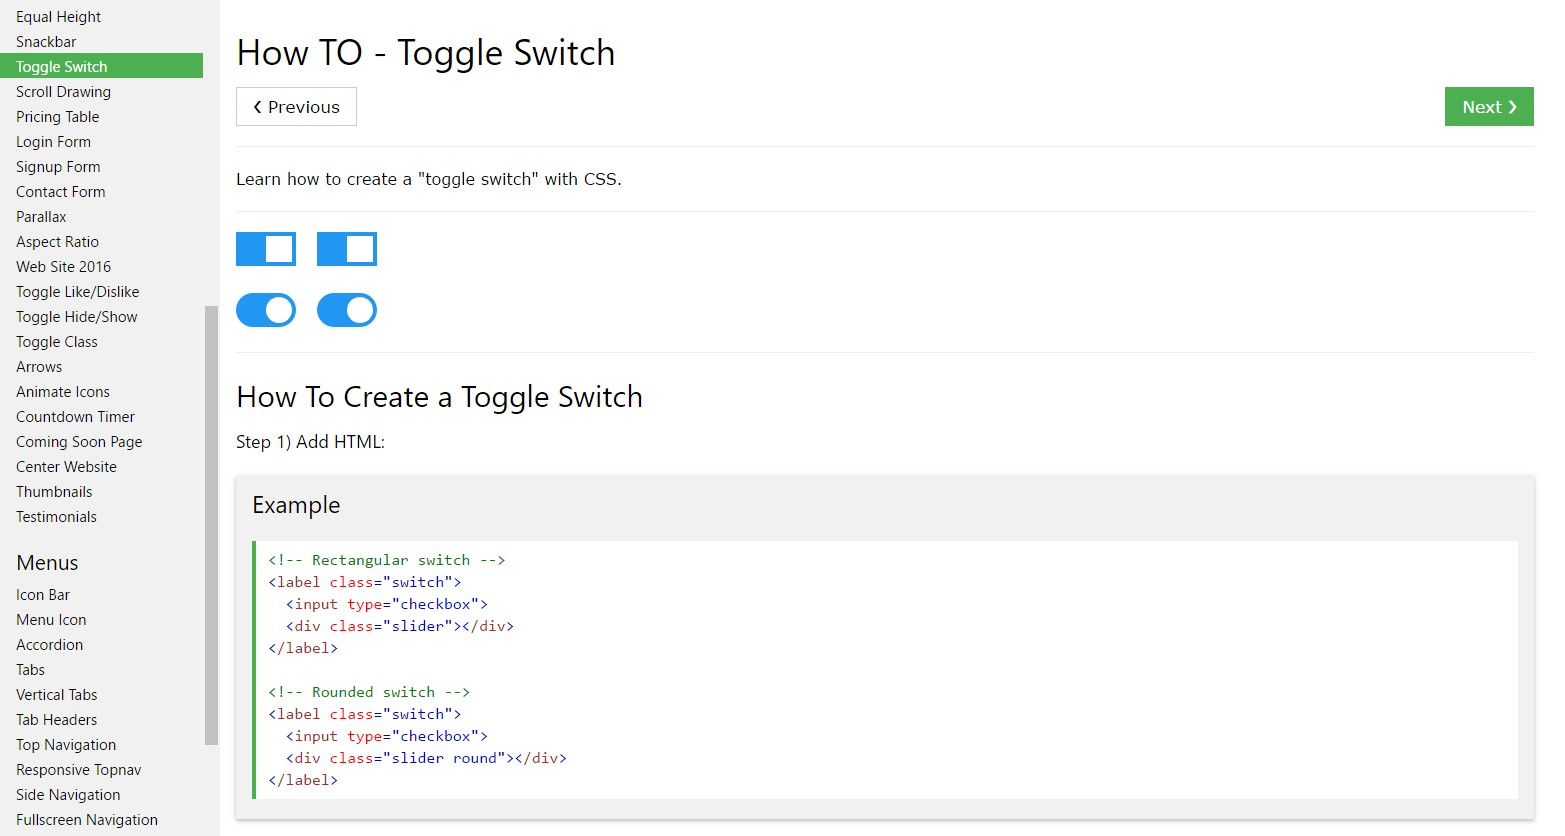 The best ways to  establish Toggle Switch